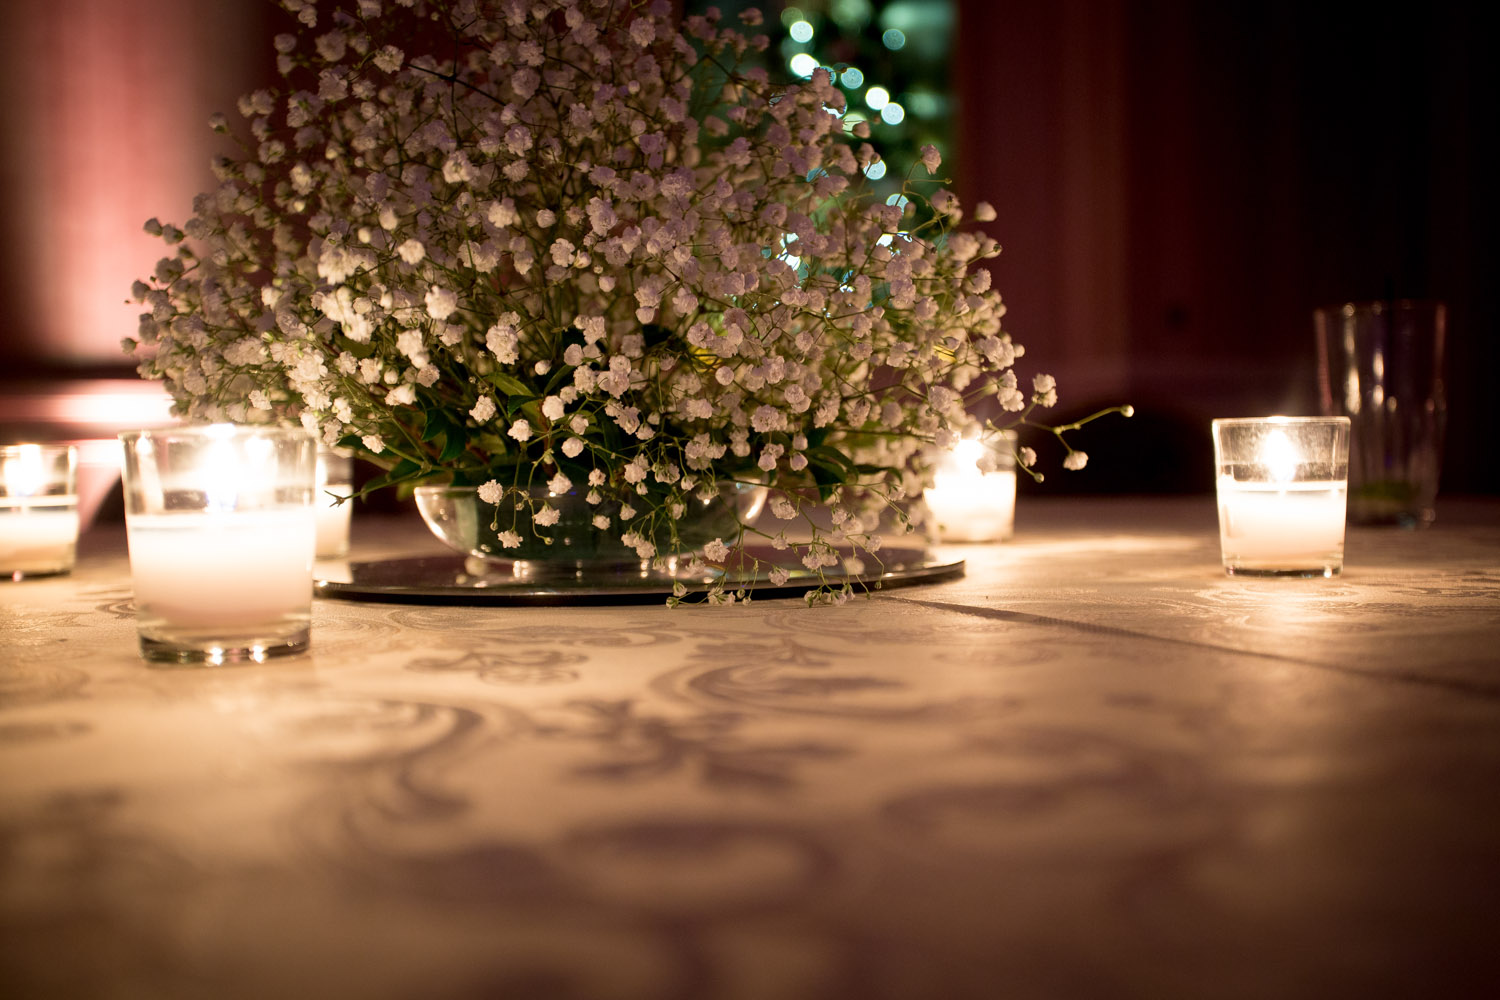 23-wedding-reception-detail-shot-low-light-babys-breath-candles-table-center-piece-mahonen-photography.jpg